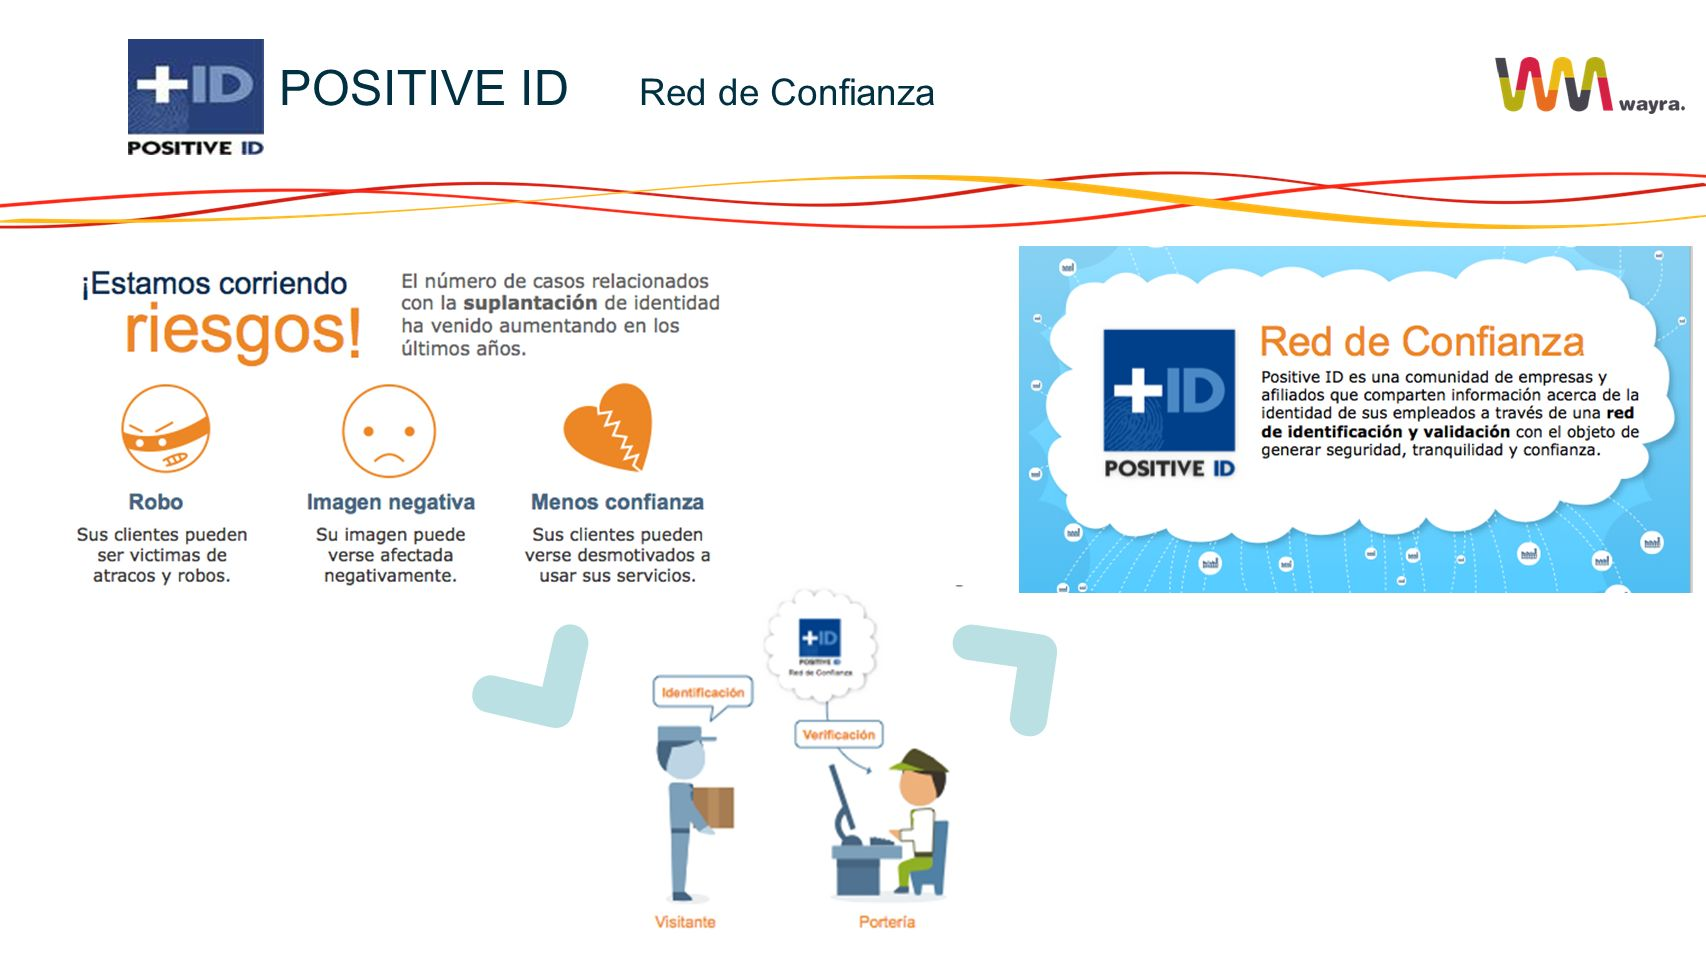 POSITIVE ID Red de Confianza